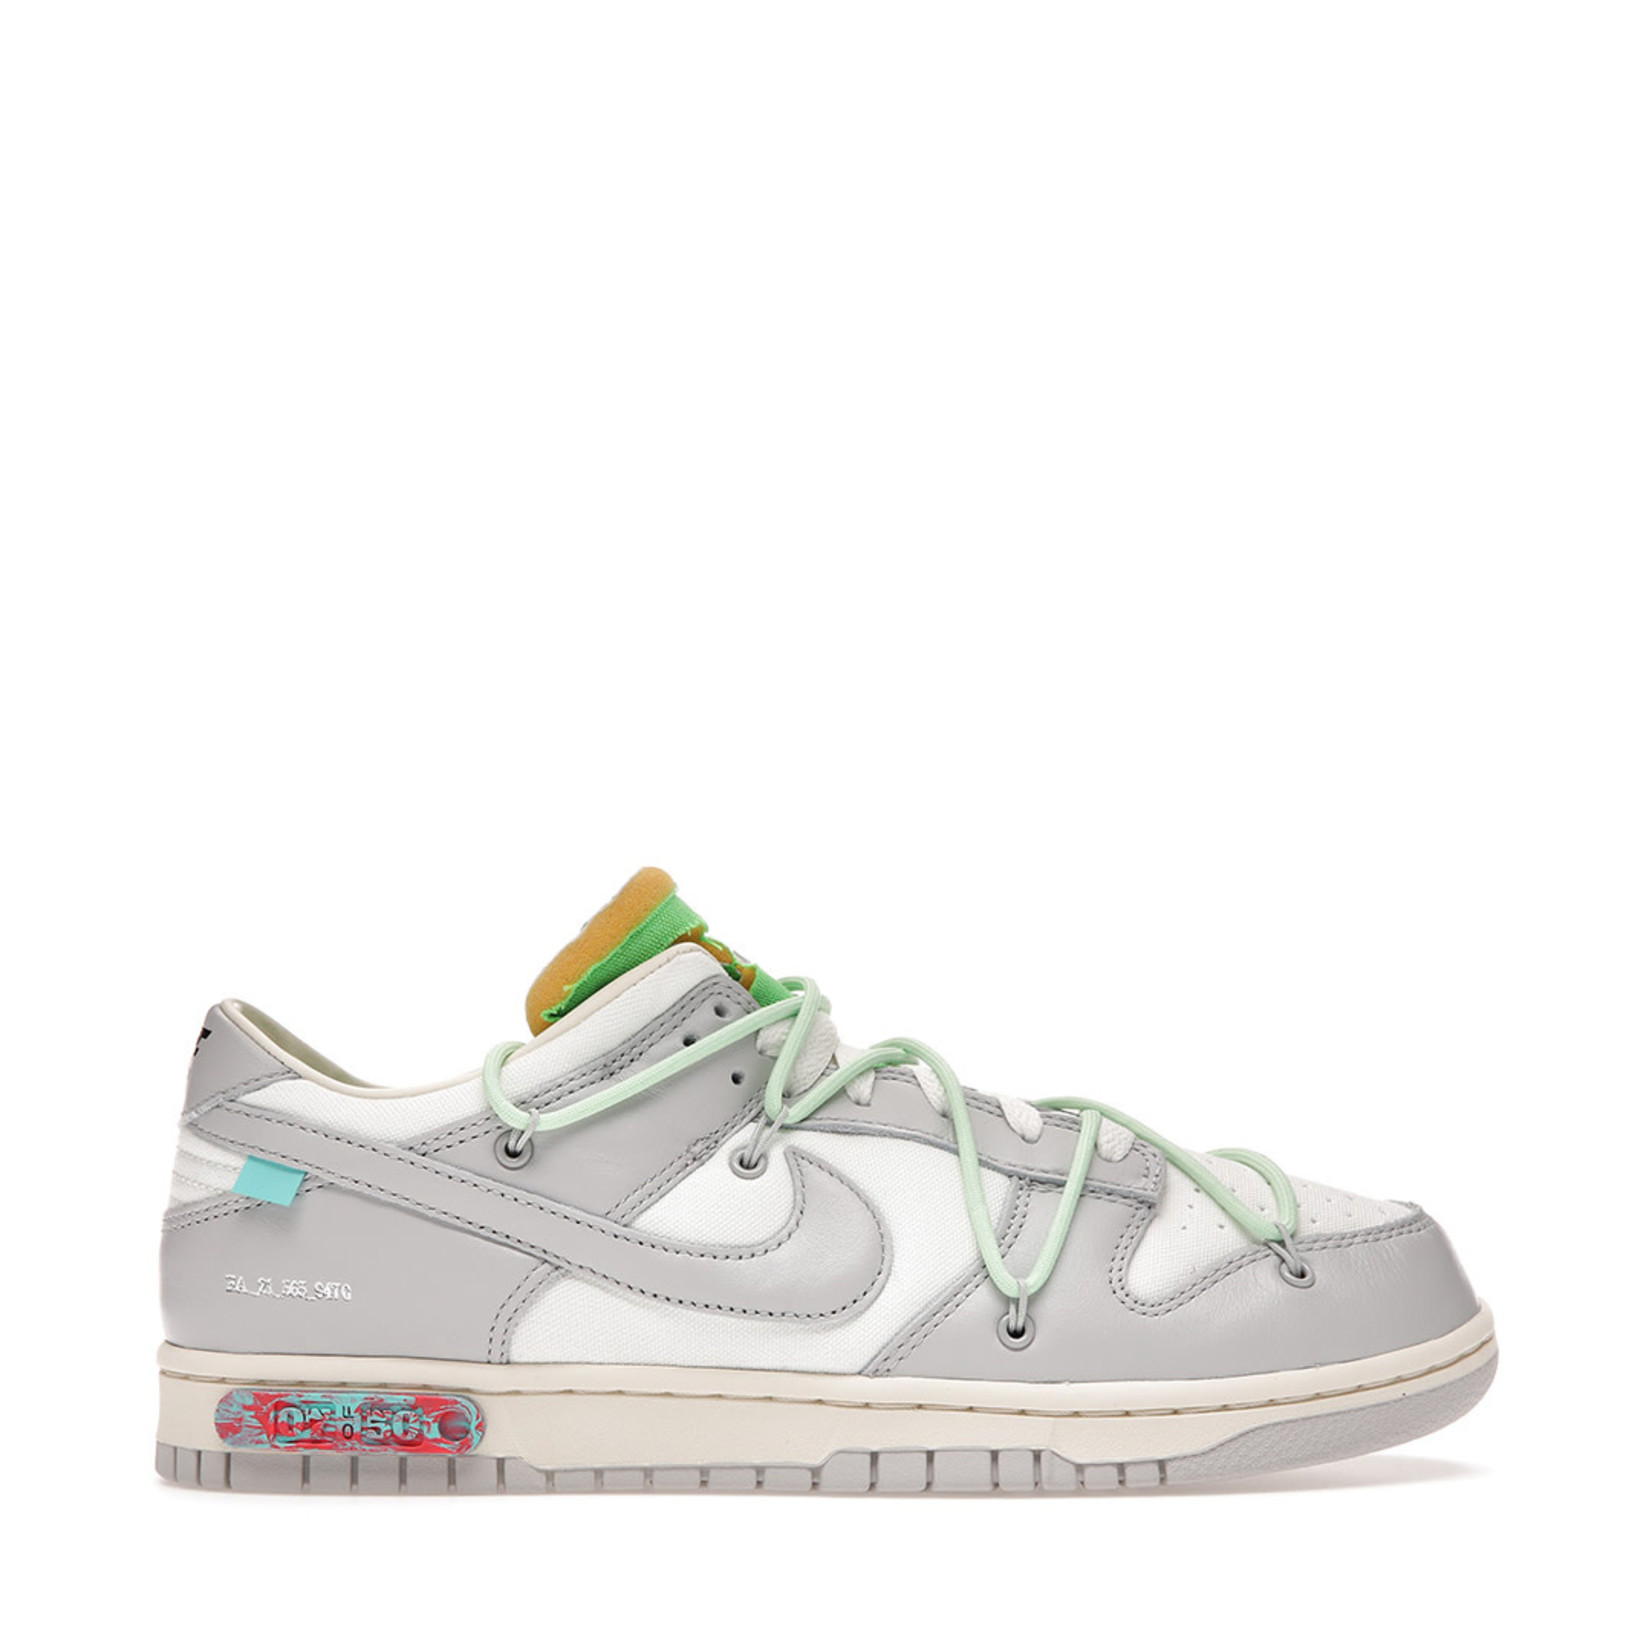 Off-White Nike Dunk Low Off-White Lot 7